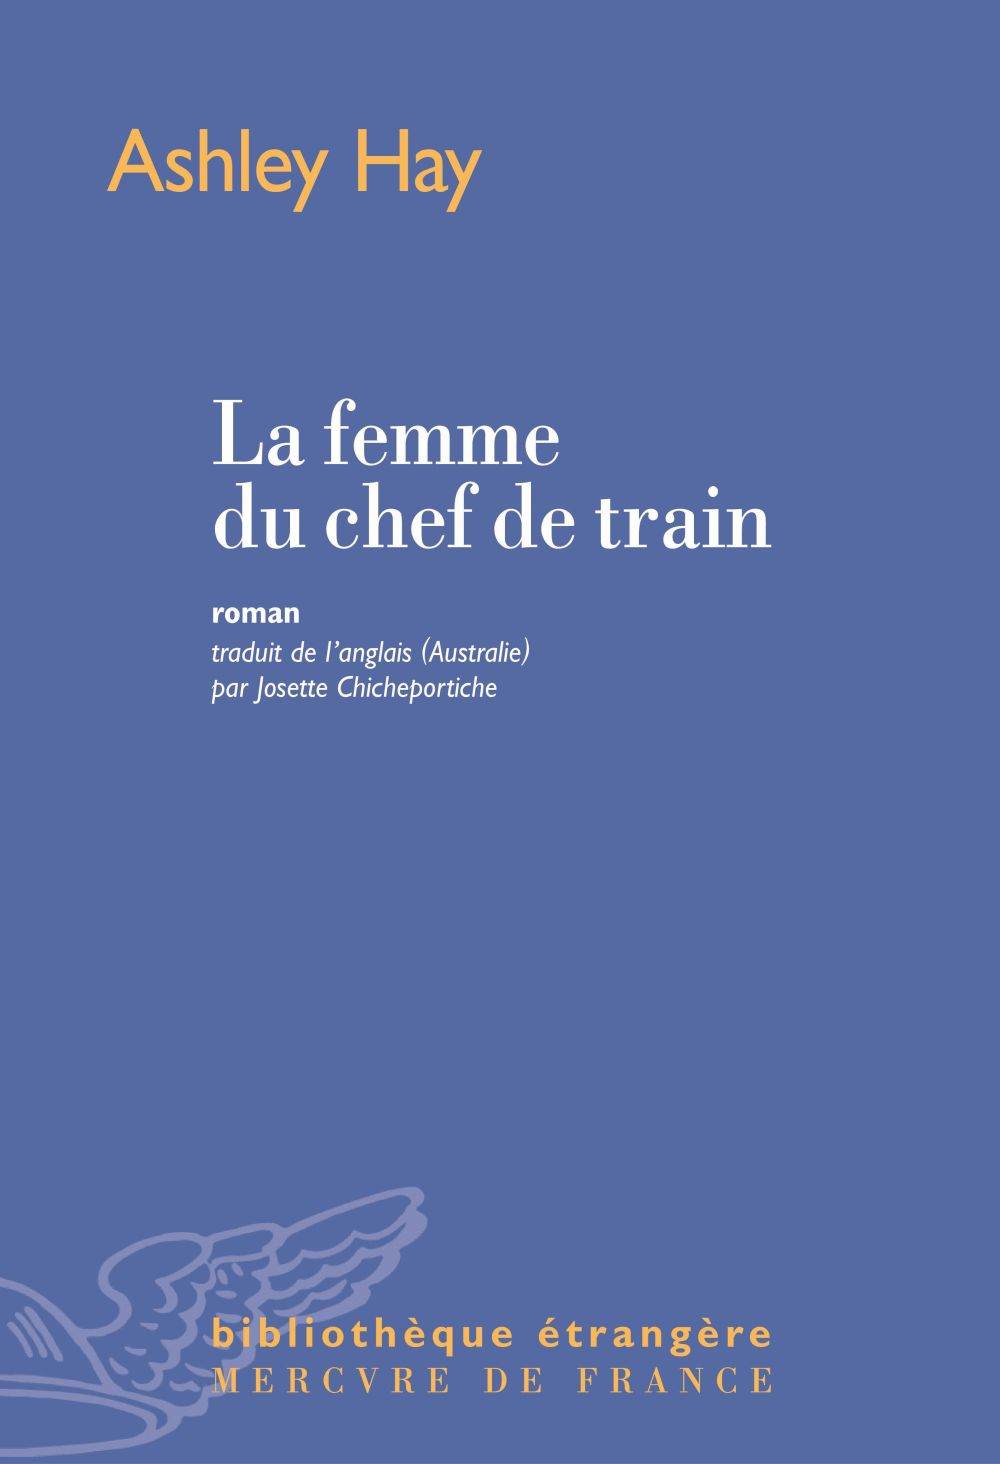 La femme du chef de train | Hay, Ashley. Auteur